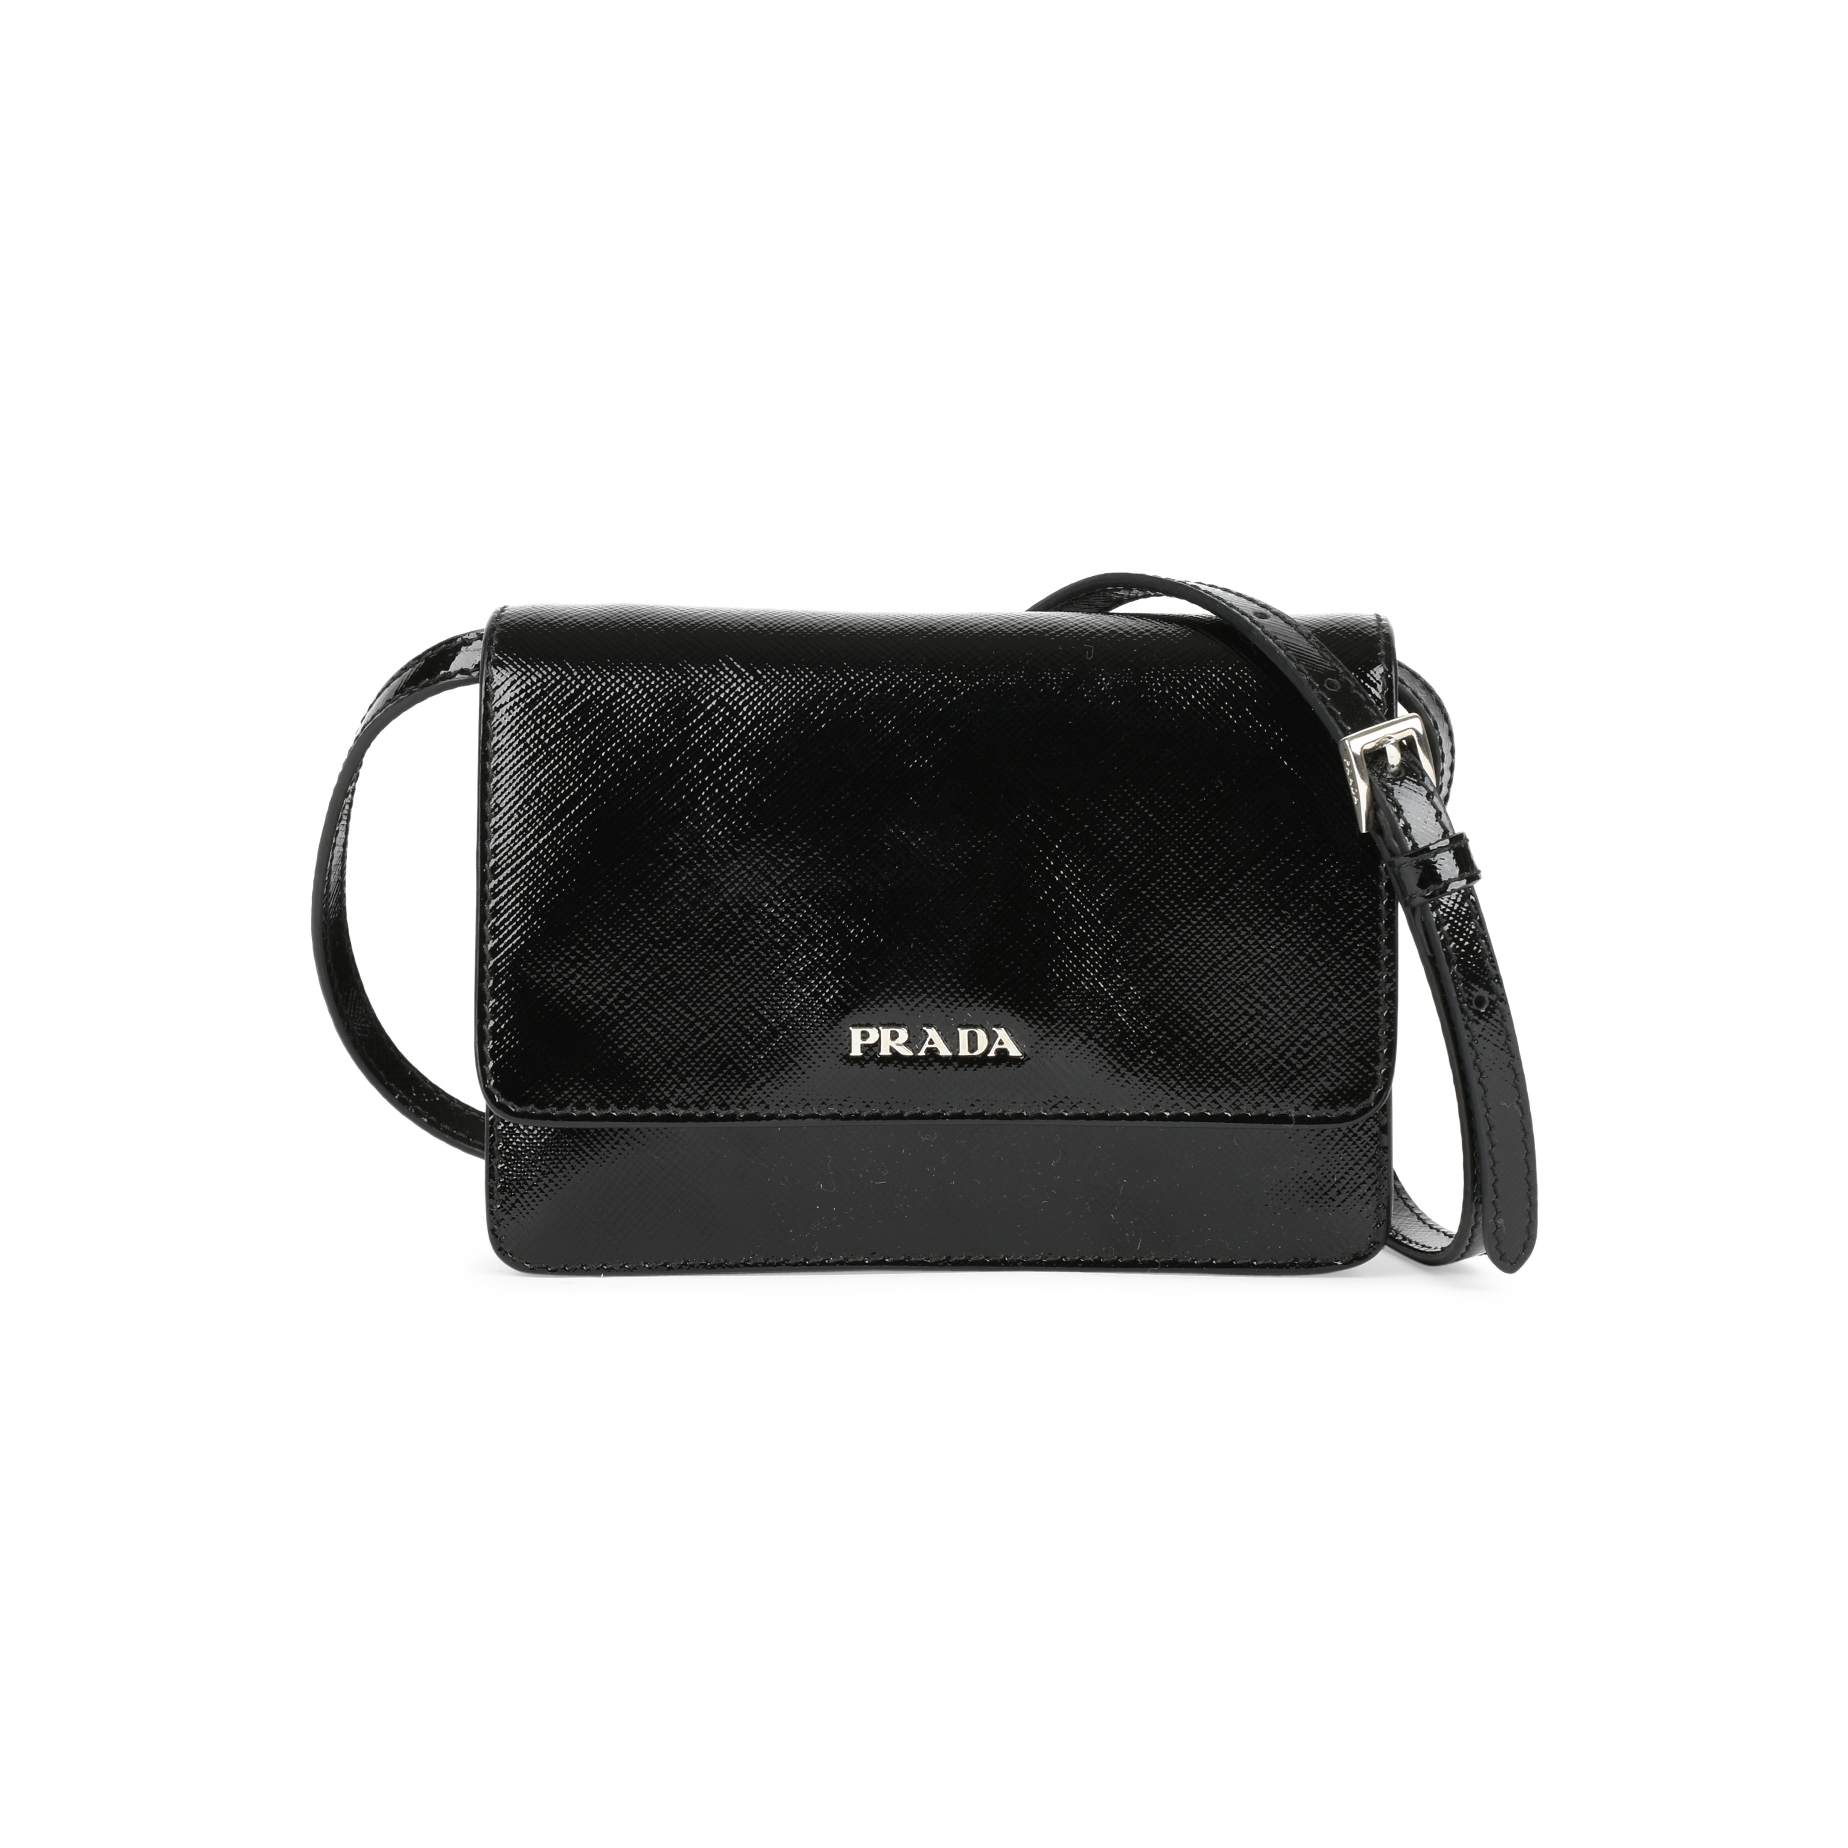 f3833aebc7bc Authentic Second Hand Prada Saffiano Lux Mini Crossbody Bag (PSS-446-00002)  | THE FIFTH COLLECTION